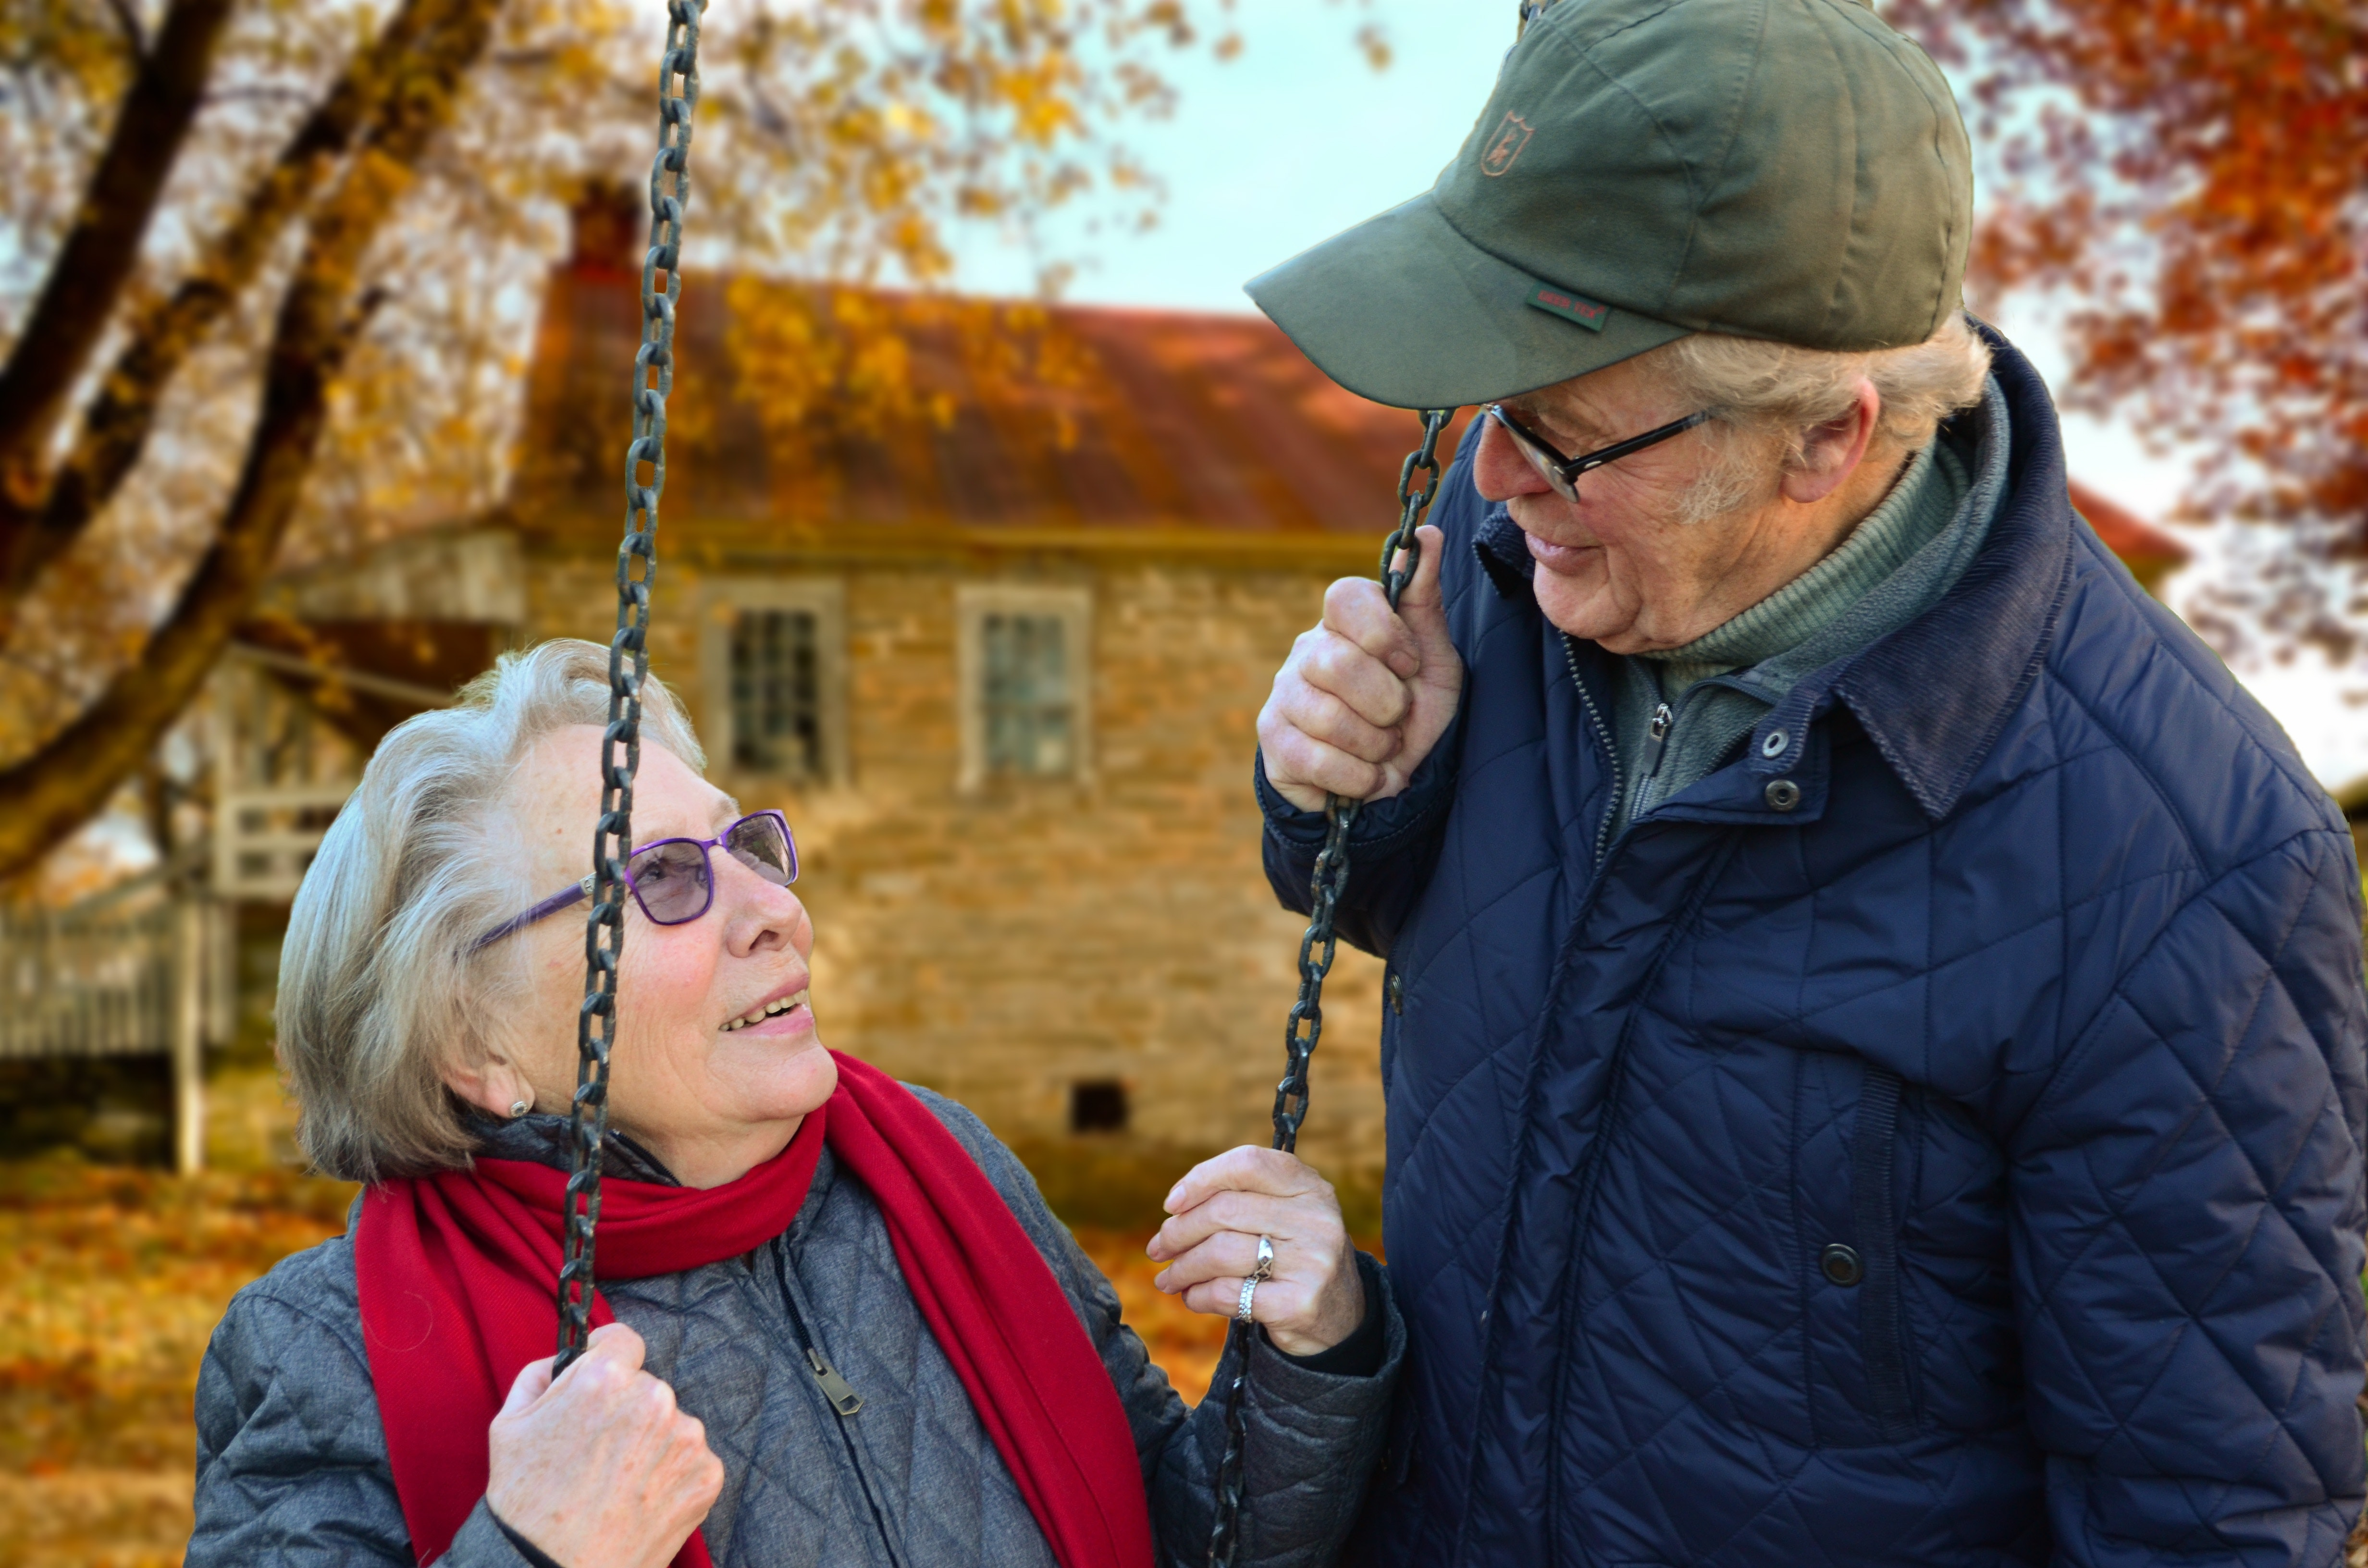 Two elderly people swinging together in the cold